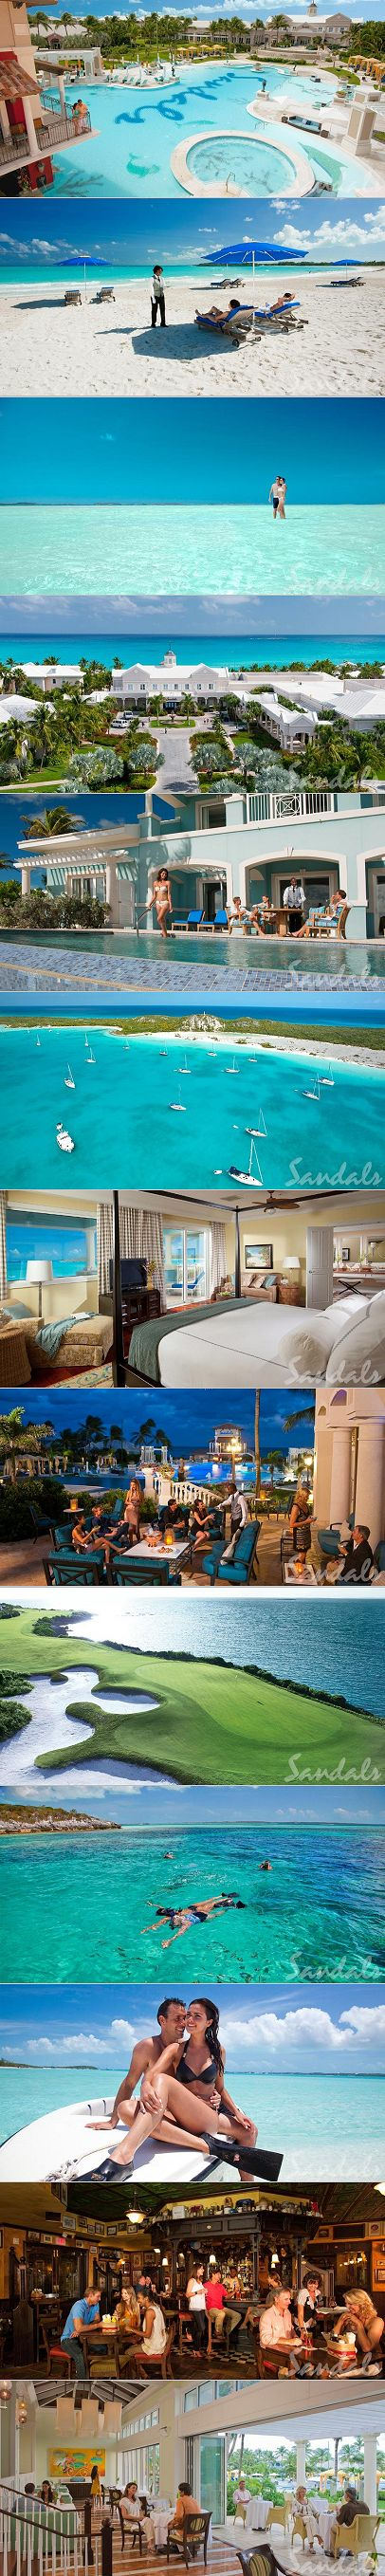 The Top Caribbean Resorts For Couples: Sandals Emerald Bay Bahamas Review